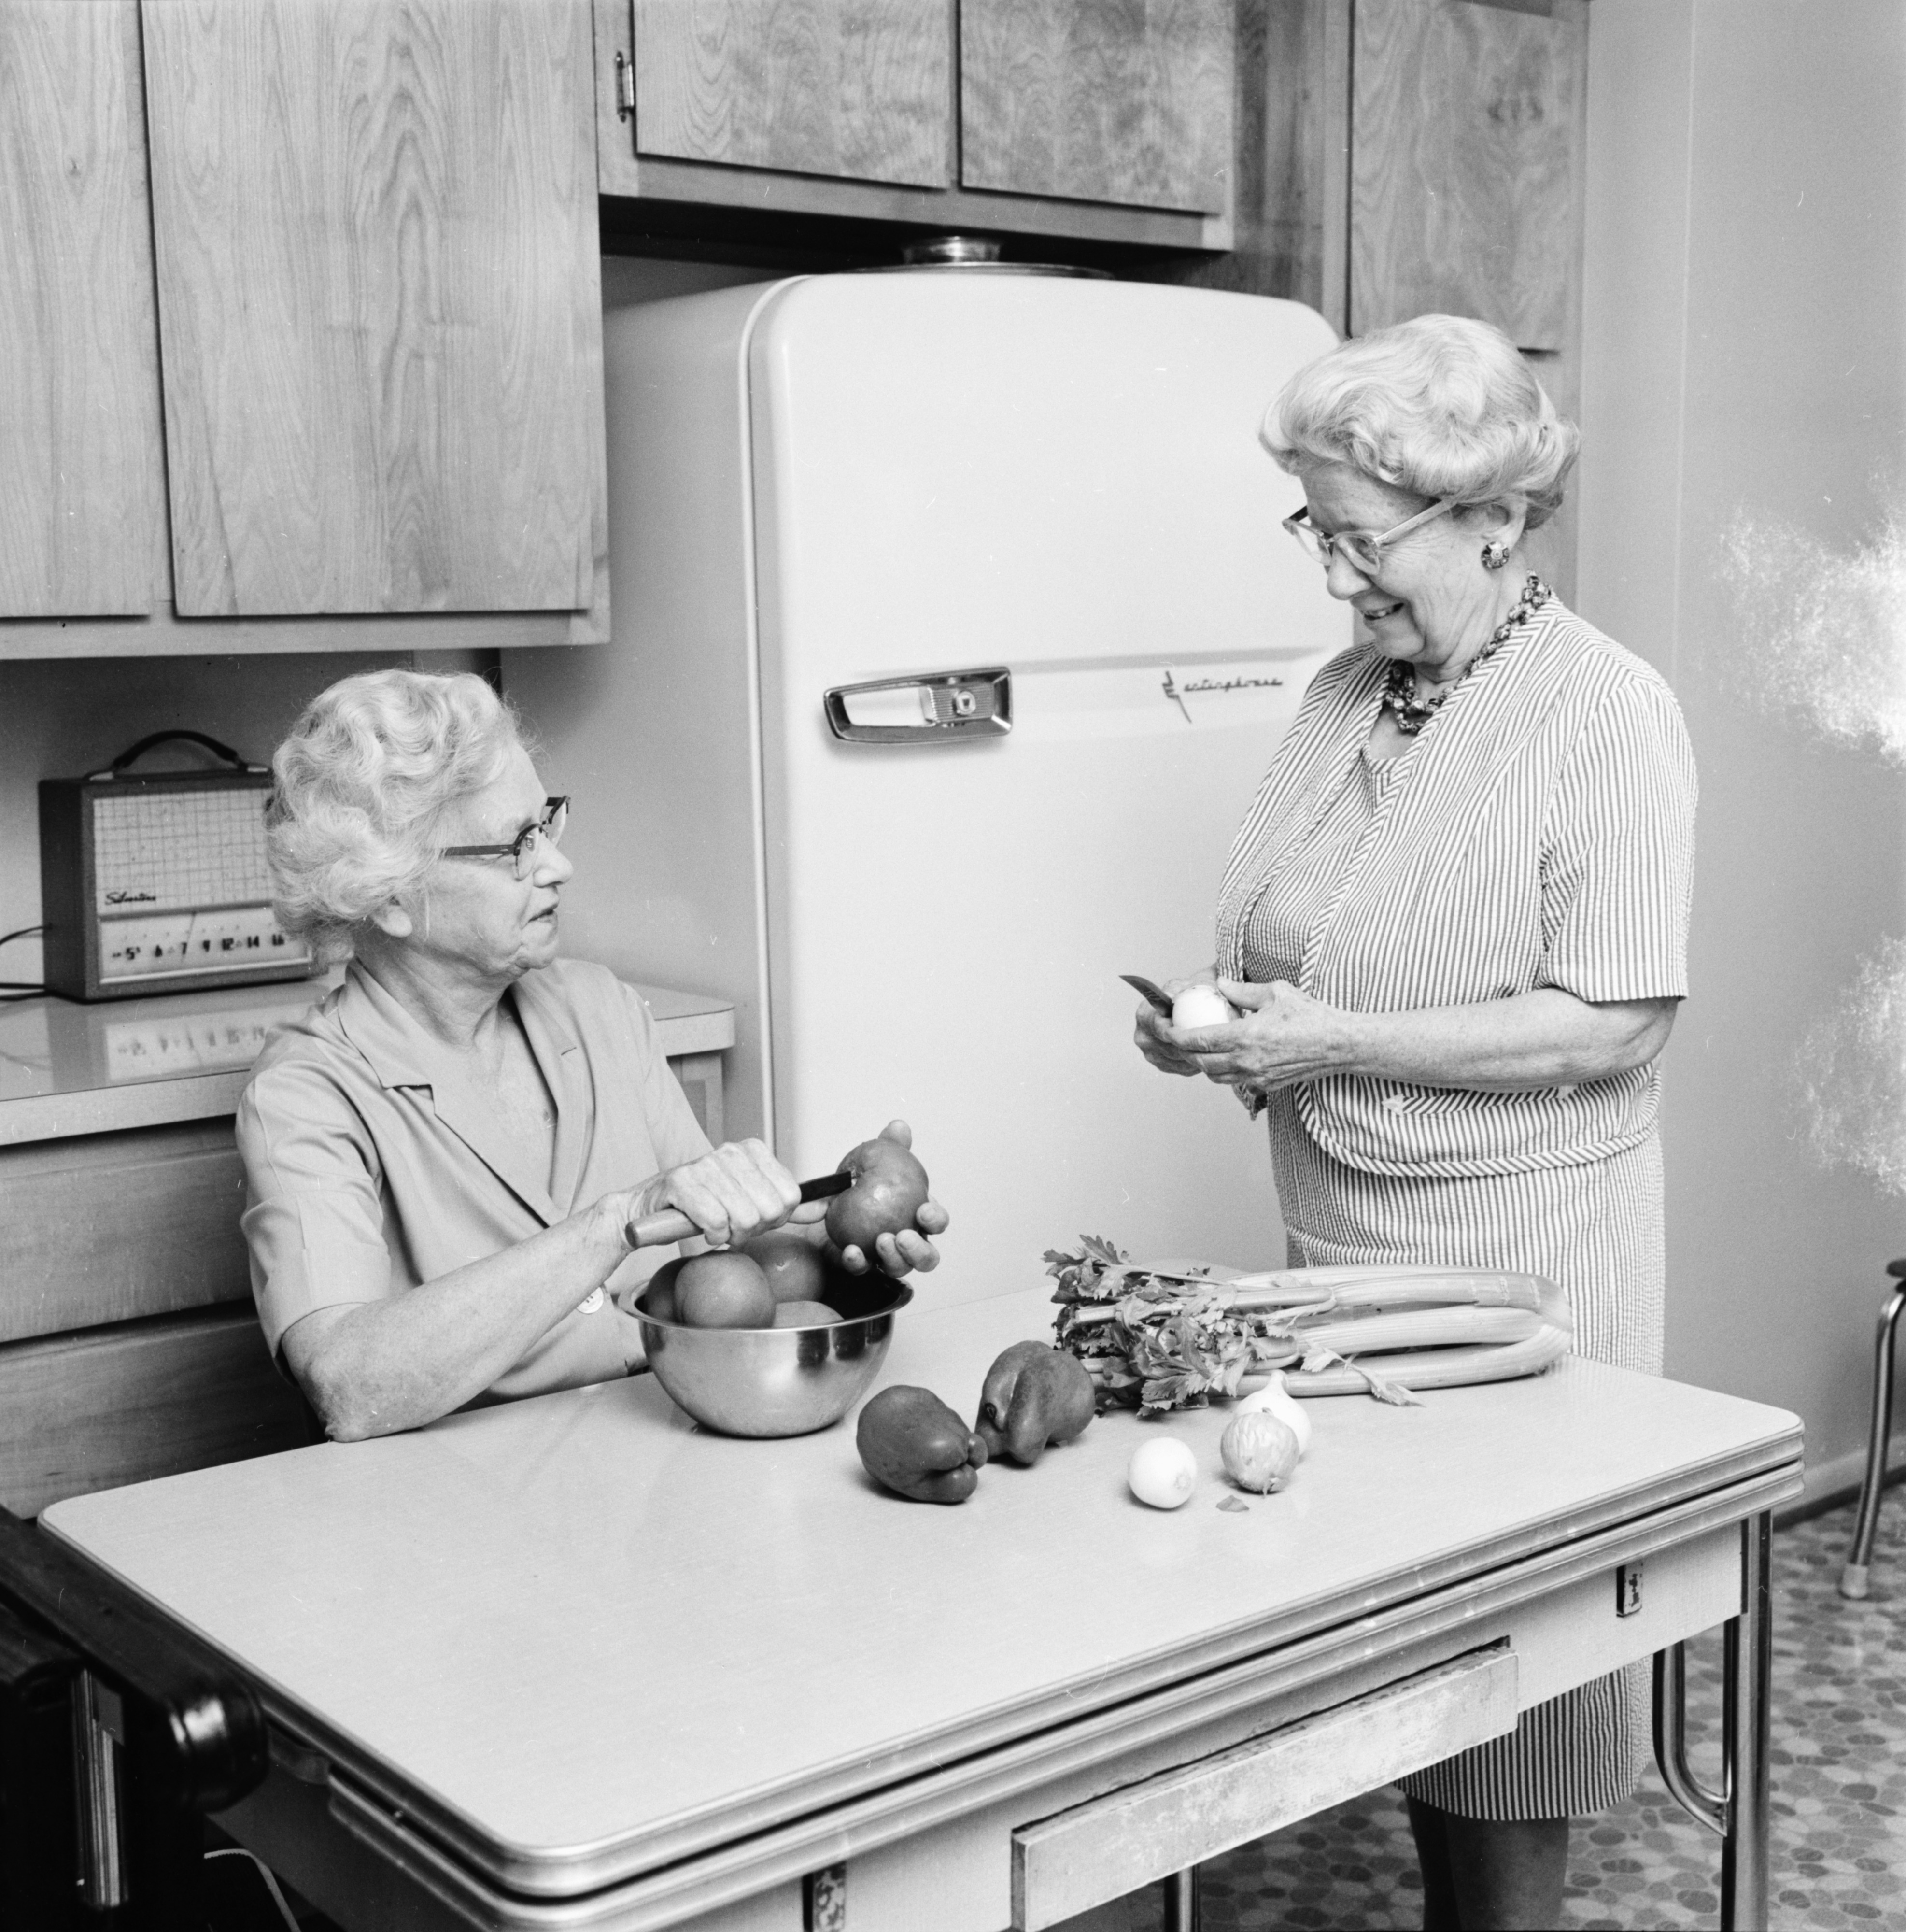 Mrs. Eula Avery and Miss Dorothy Buckley make Tomato soup, October 1964 image